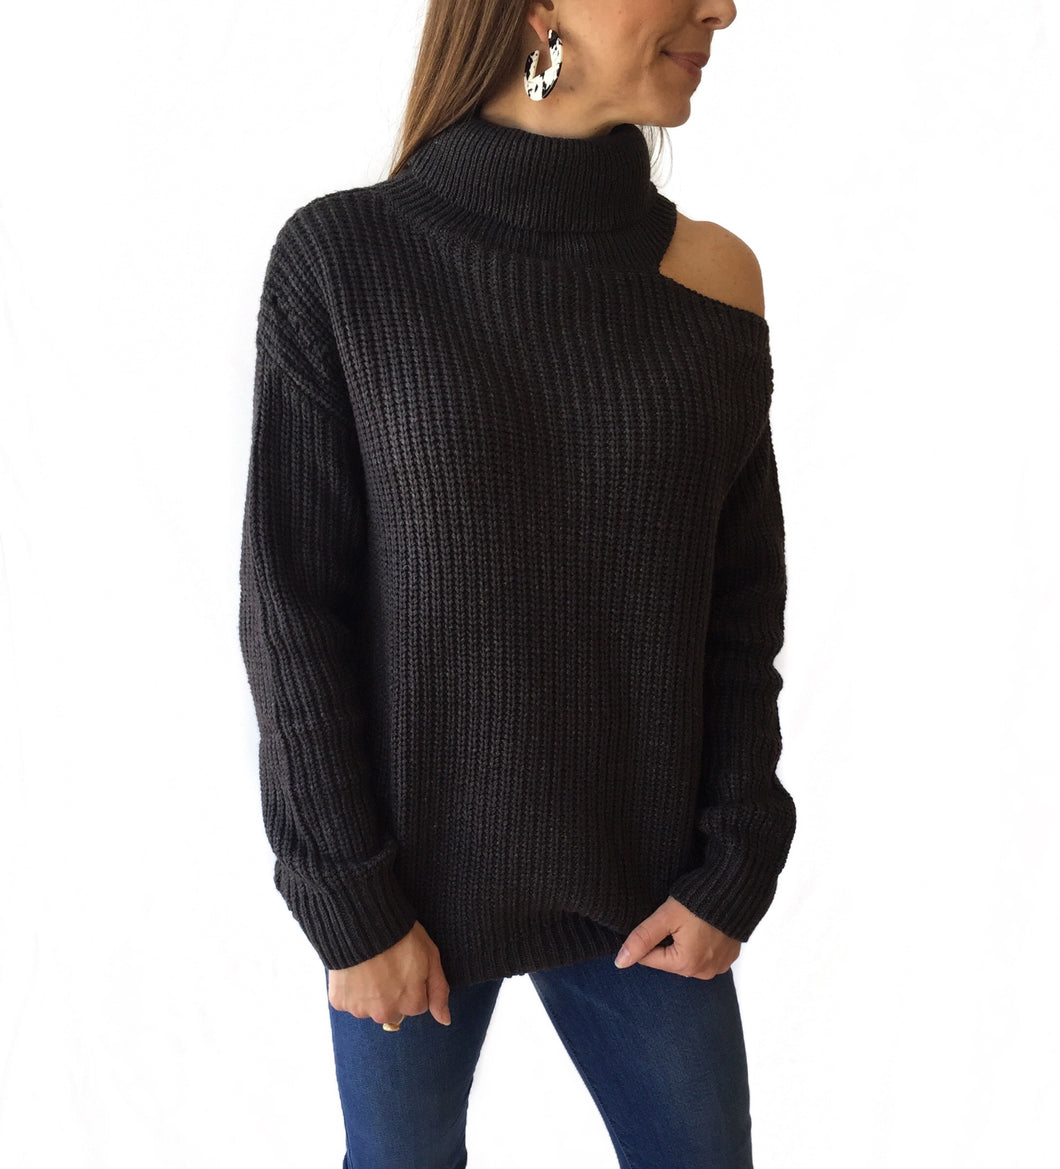 Charcoal Sweater w/ Shldr Cutout